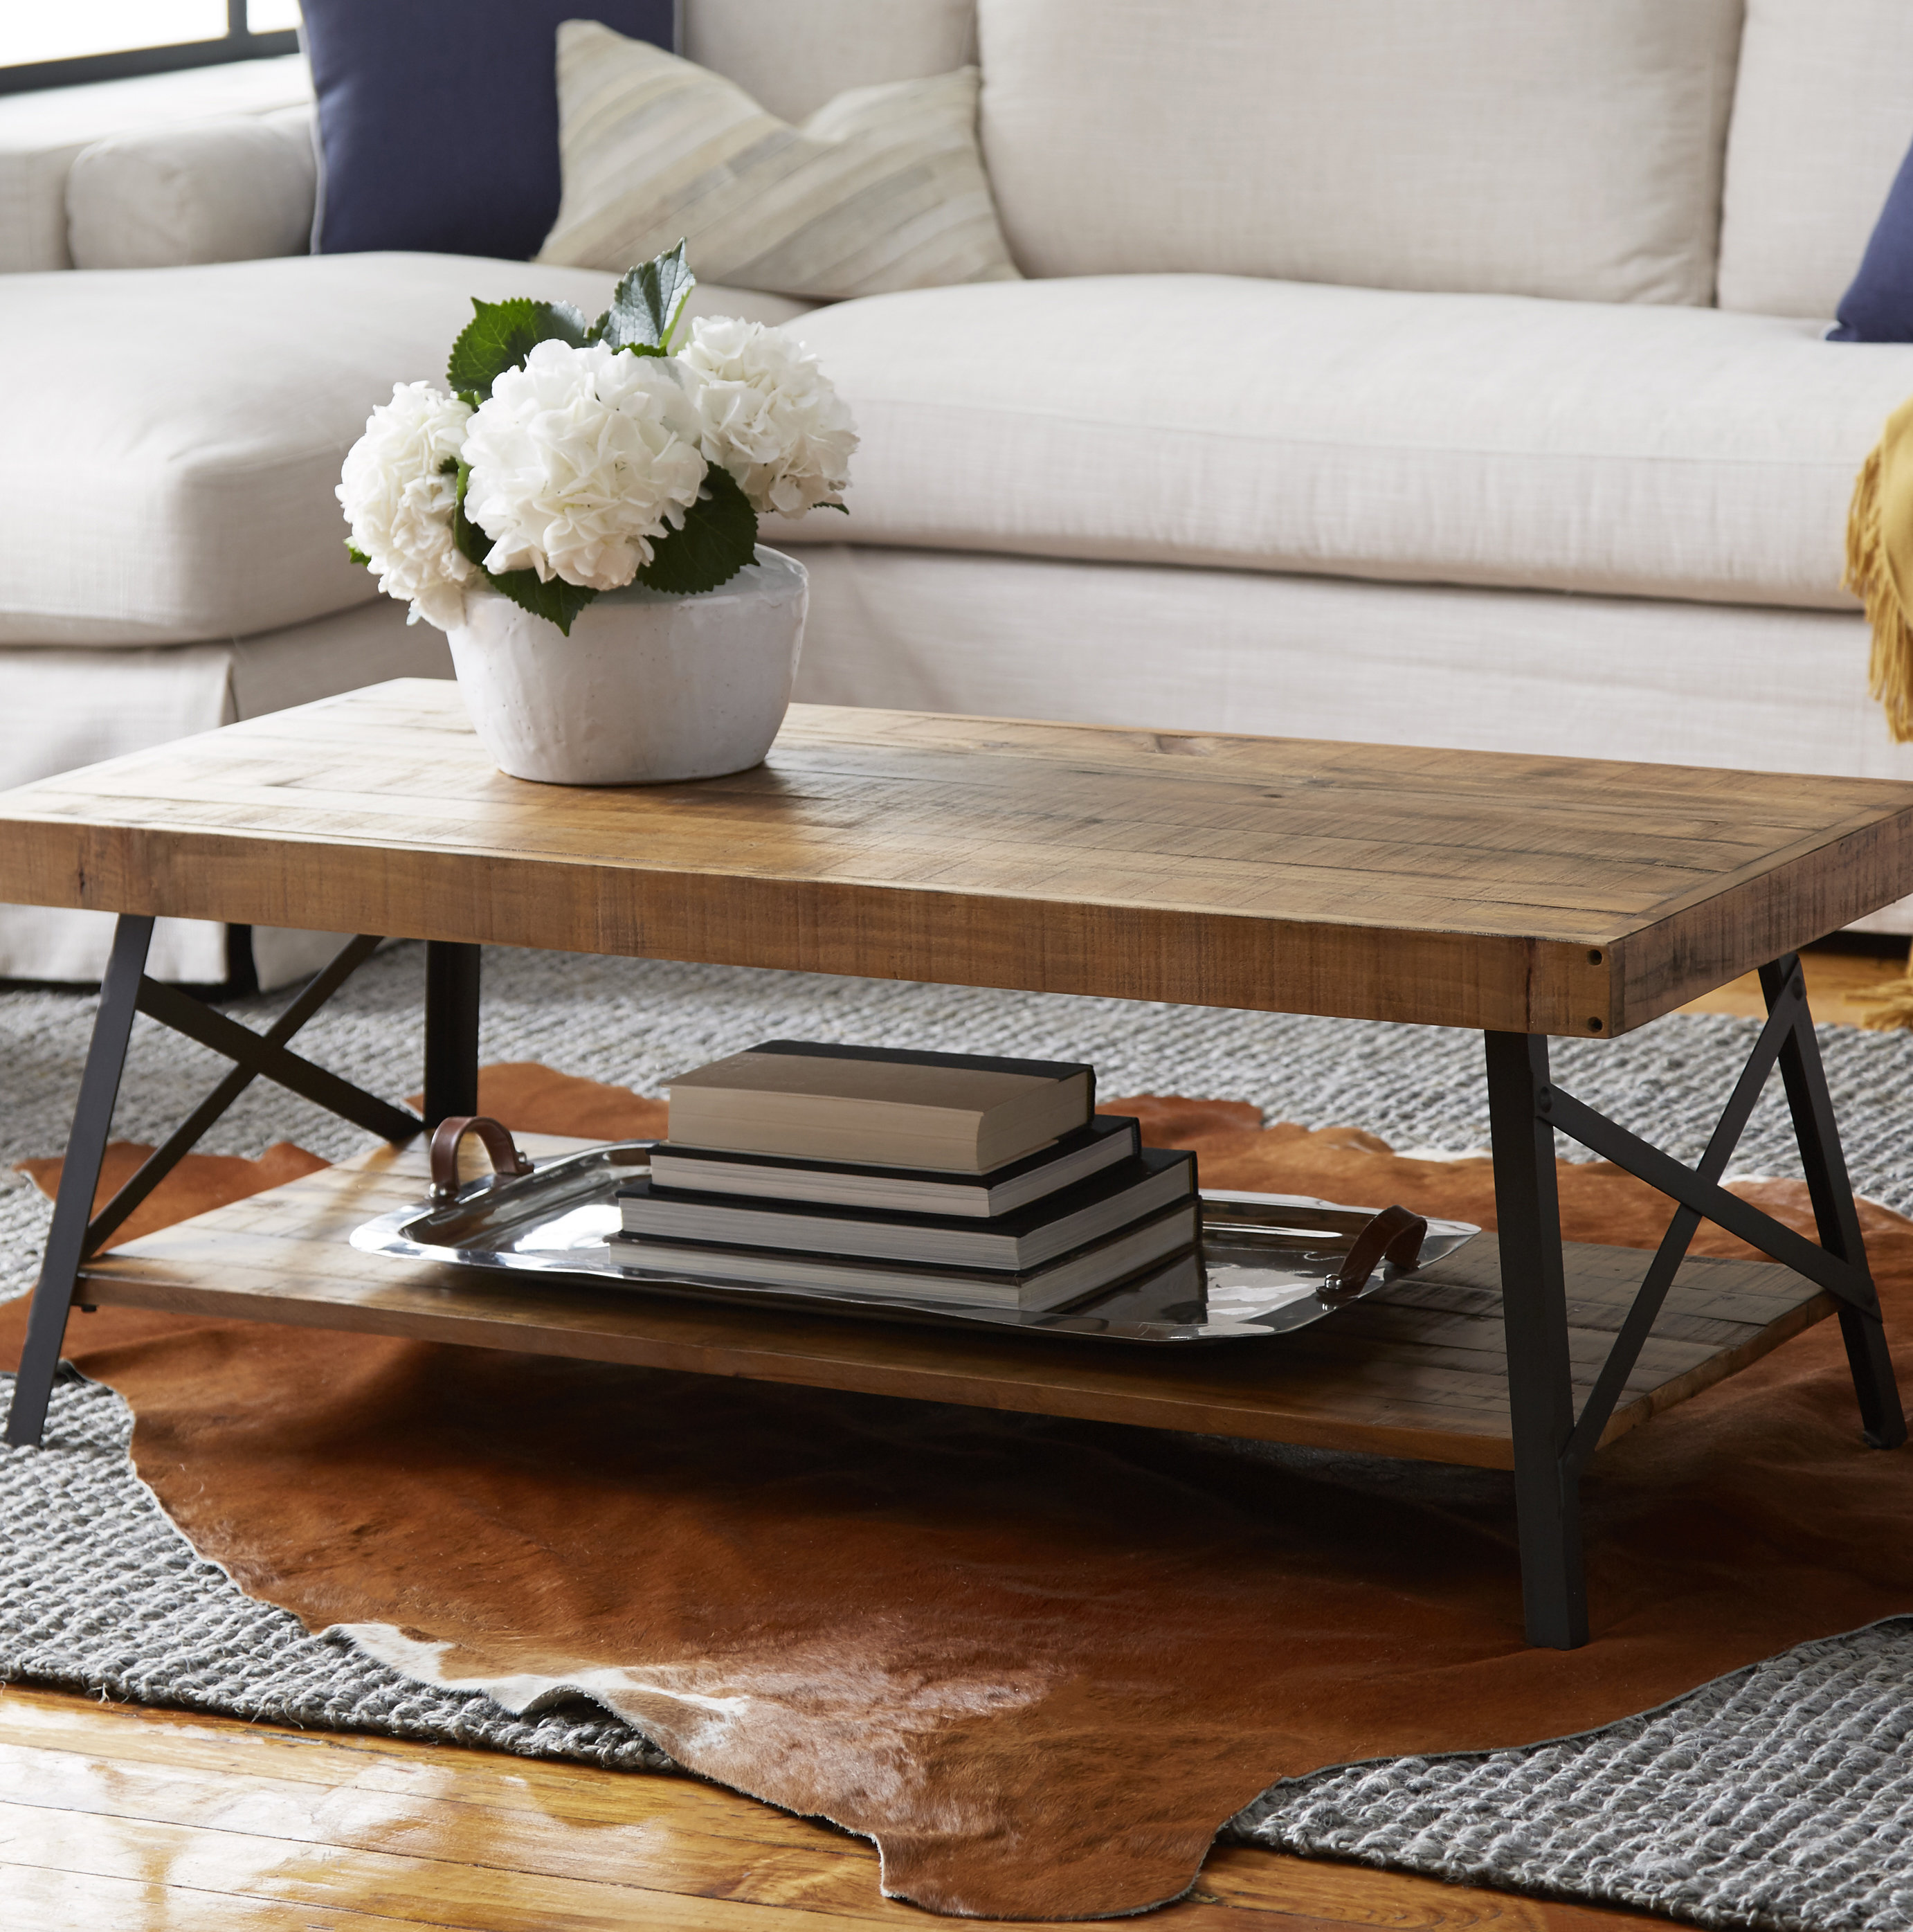 retro coffee tables kinsella table room essentials mixed material accent stylish lamps restaurant battery operated changing black patio end aluminium door threshold trim country